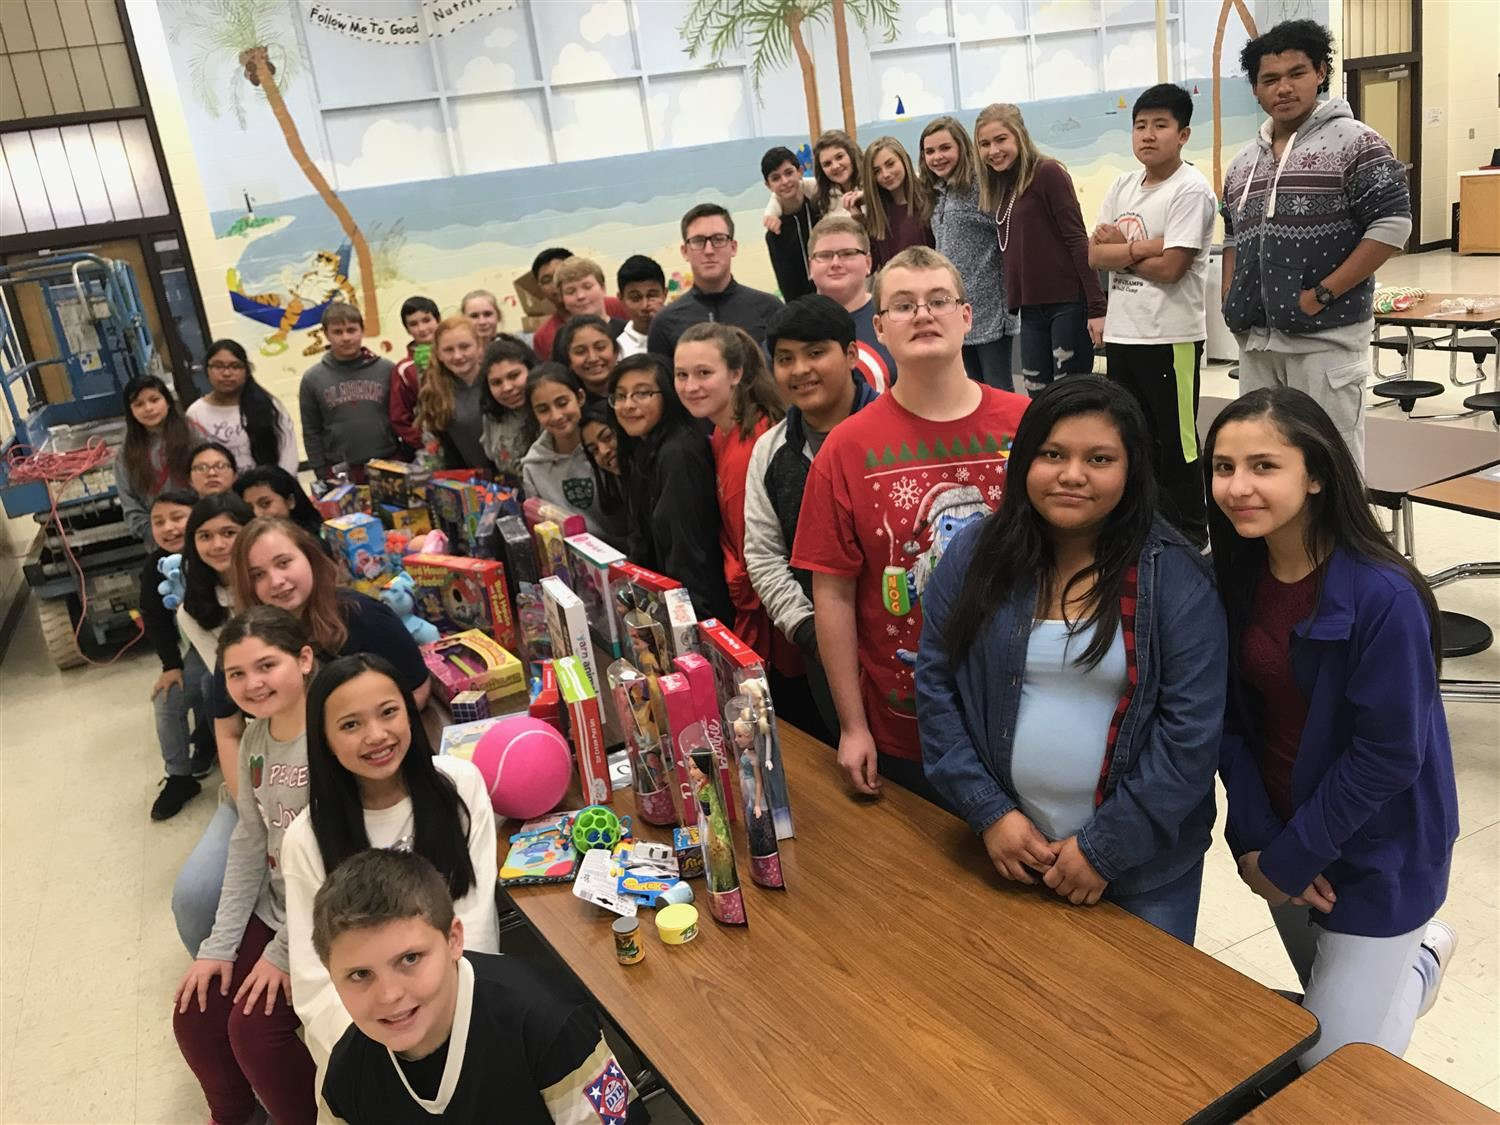 RMS Student Council toy Drive/Christmas Party